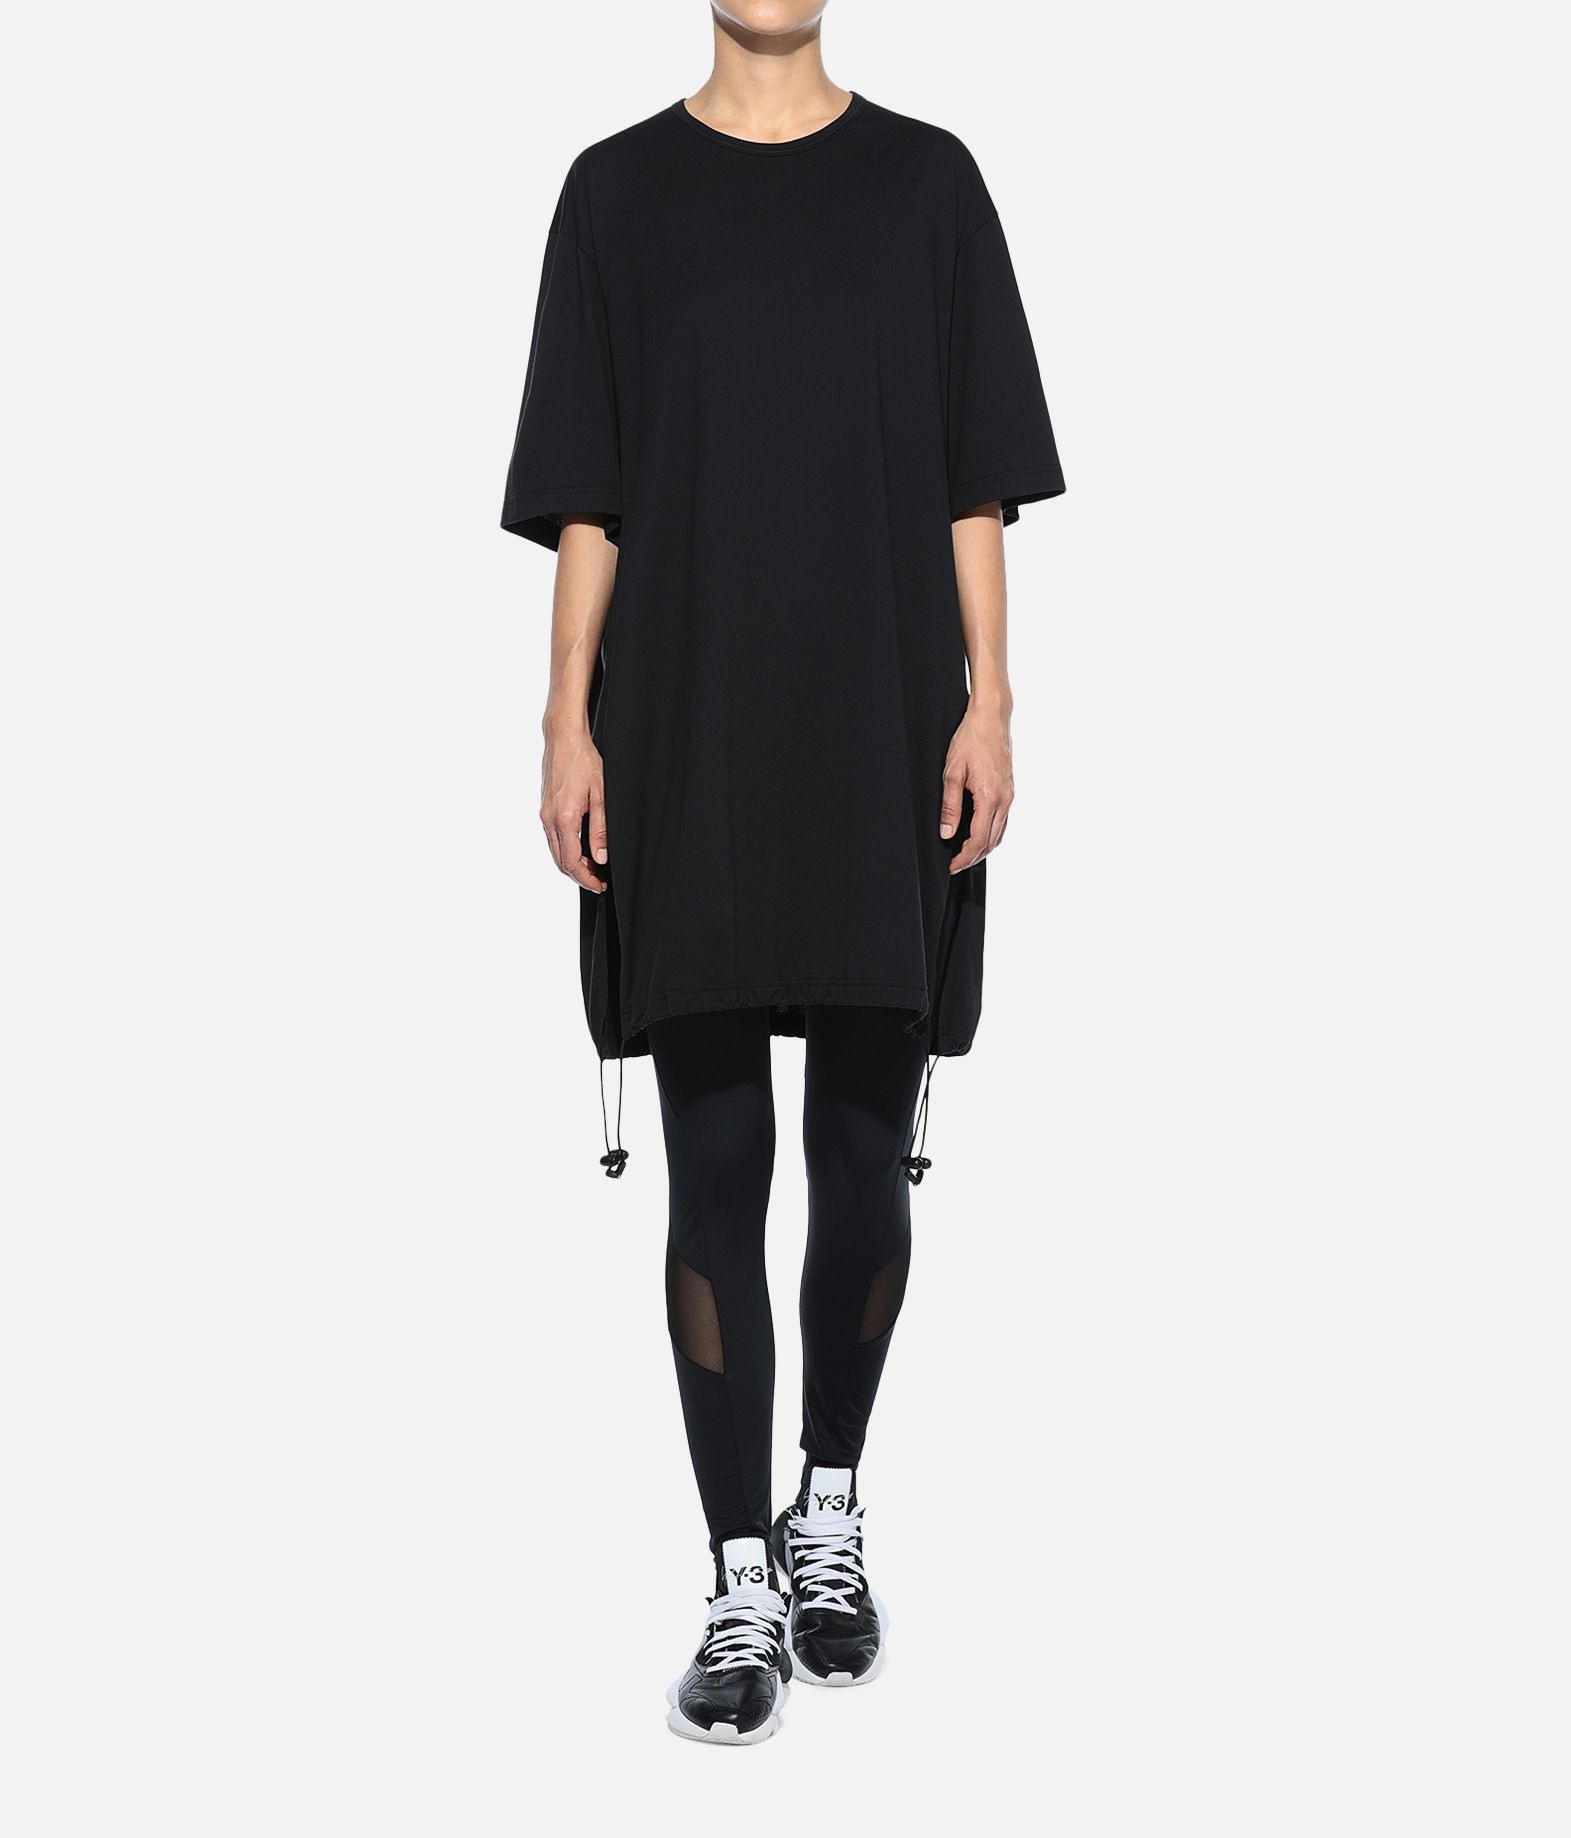 Y-3 Y-3 Drawstring Long Tee Kurzärmliges T-shirt Damen a